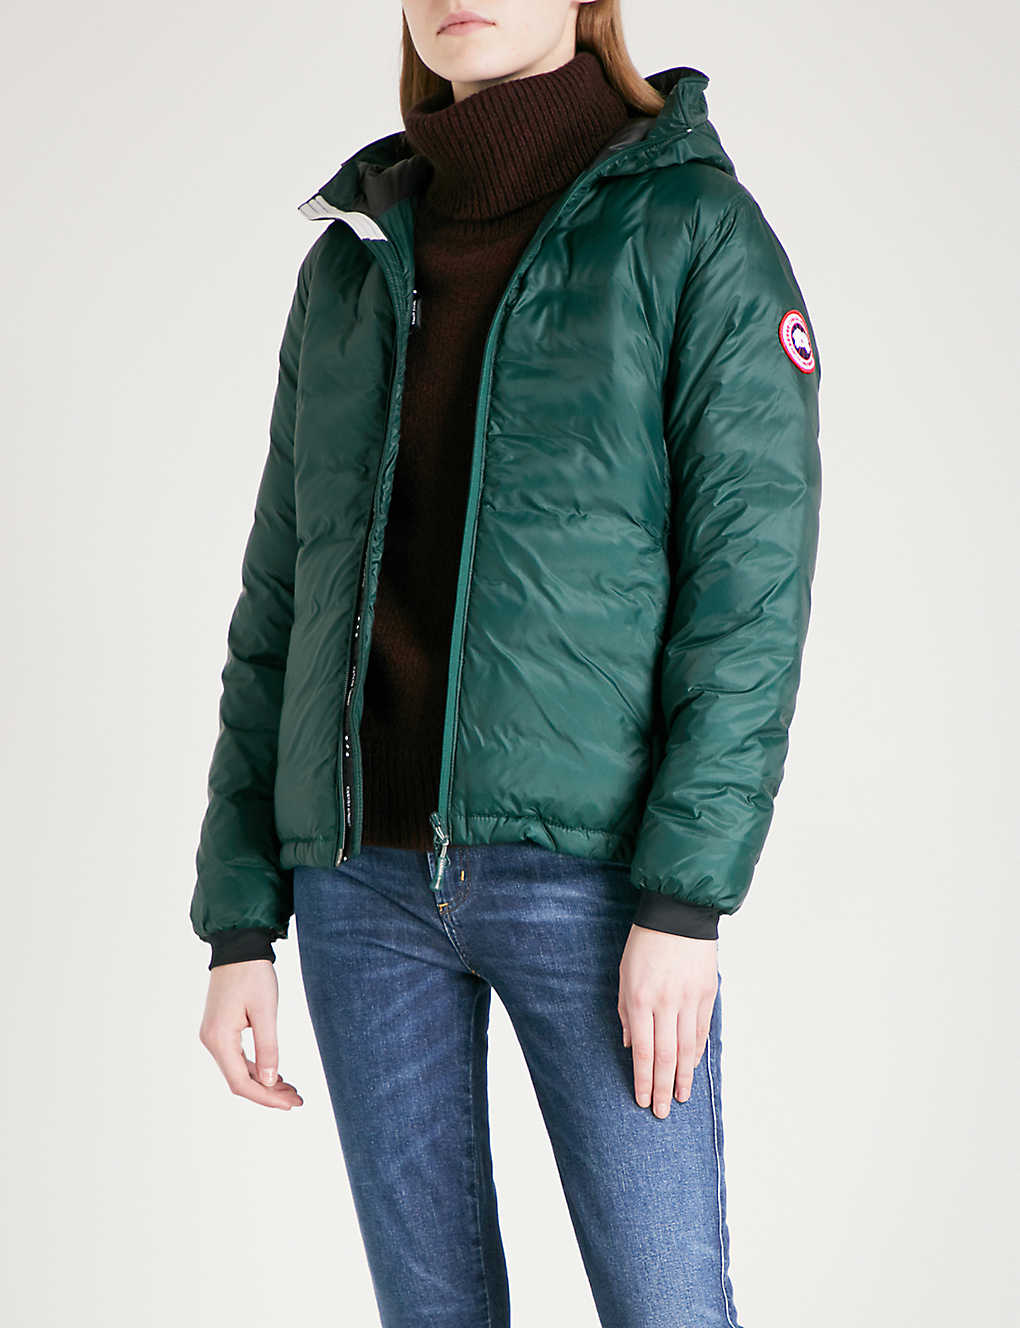 canada goose camp hooded jacket red tree rh korcanyurdacan com